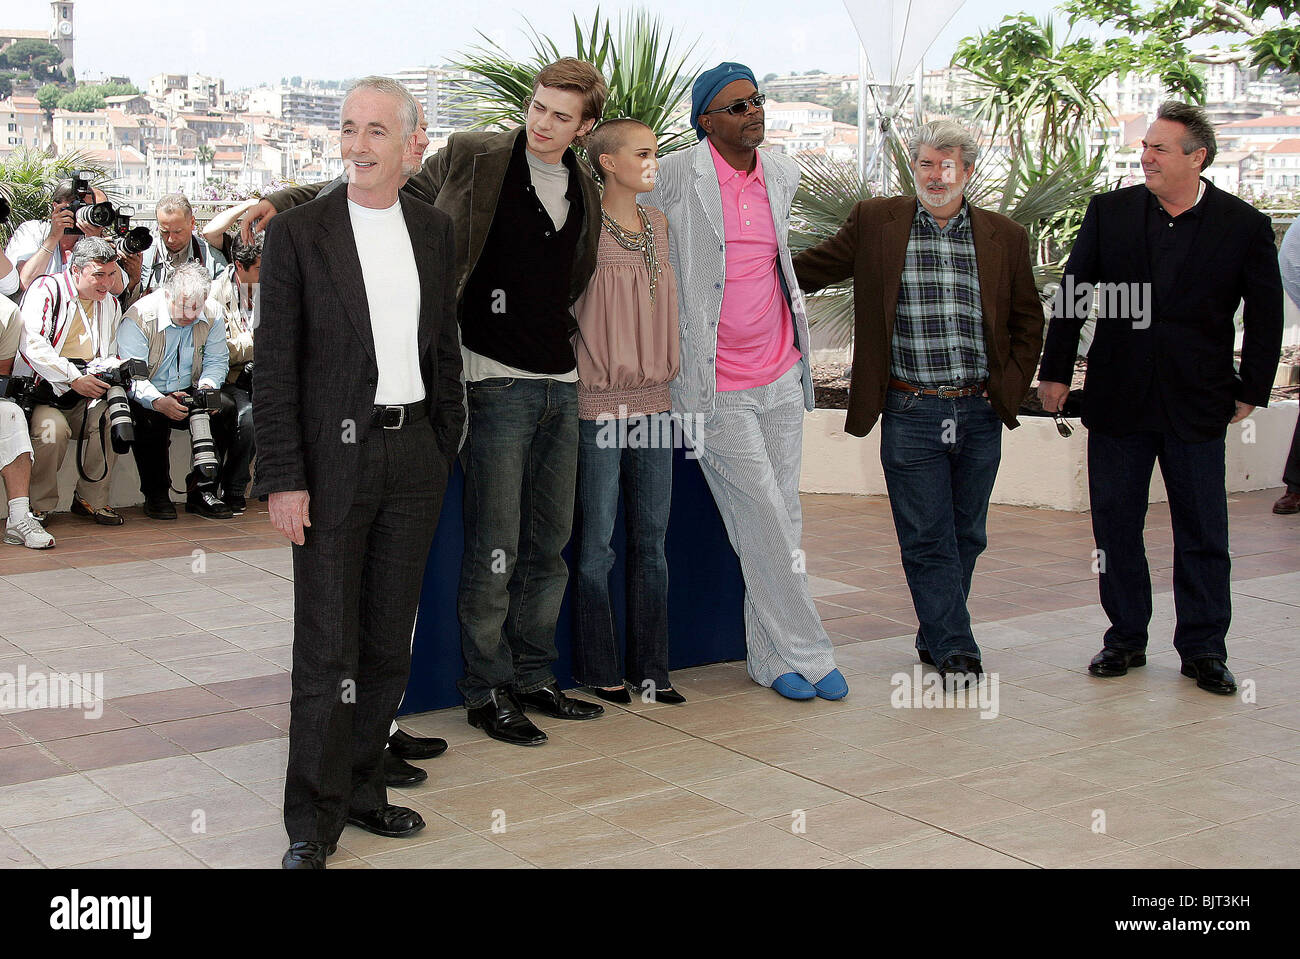 STAR WARS PHOTO CALL CANNES FILM FESTIVAL 2005 CANNES Frankreich 16 Mai 2005 Stockbild